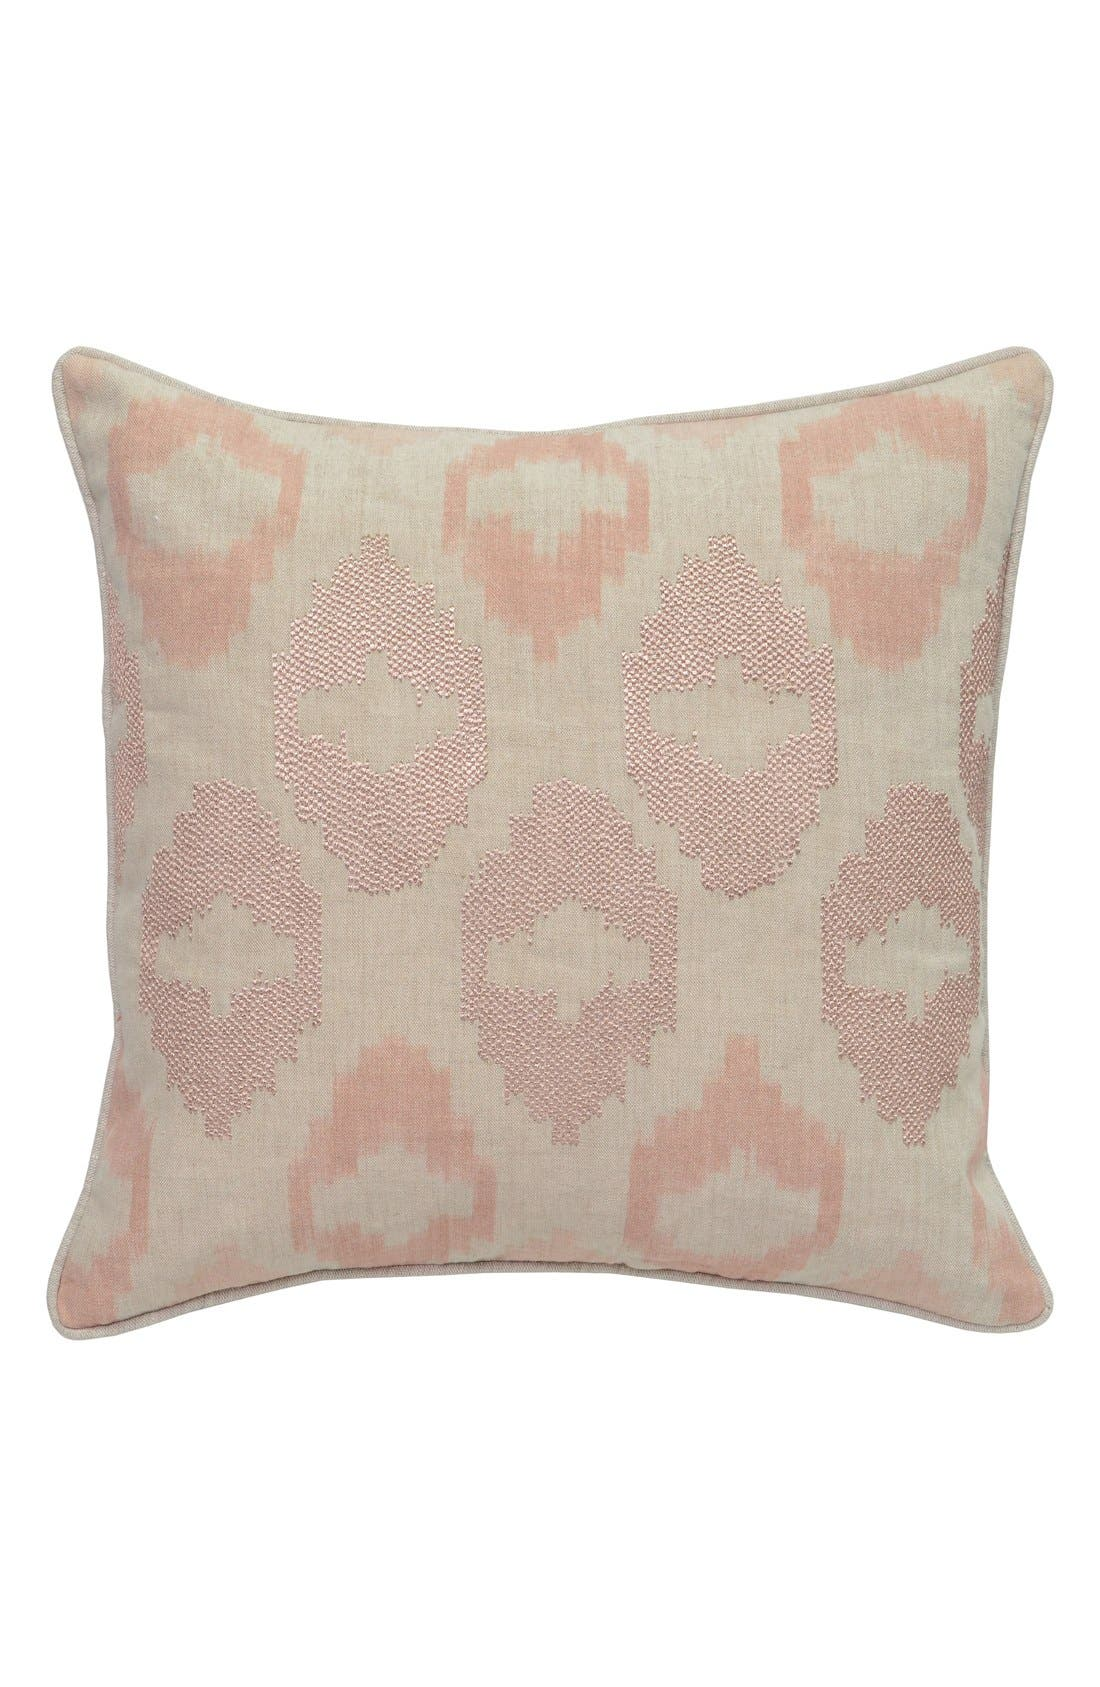 Mira Accent Pillow,                         Main,                         color, BEIGE/ BLUSH